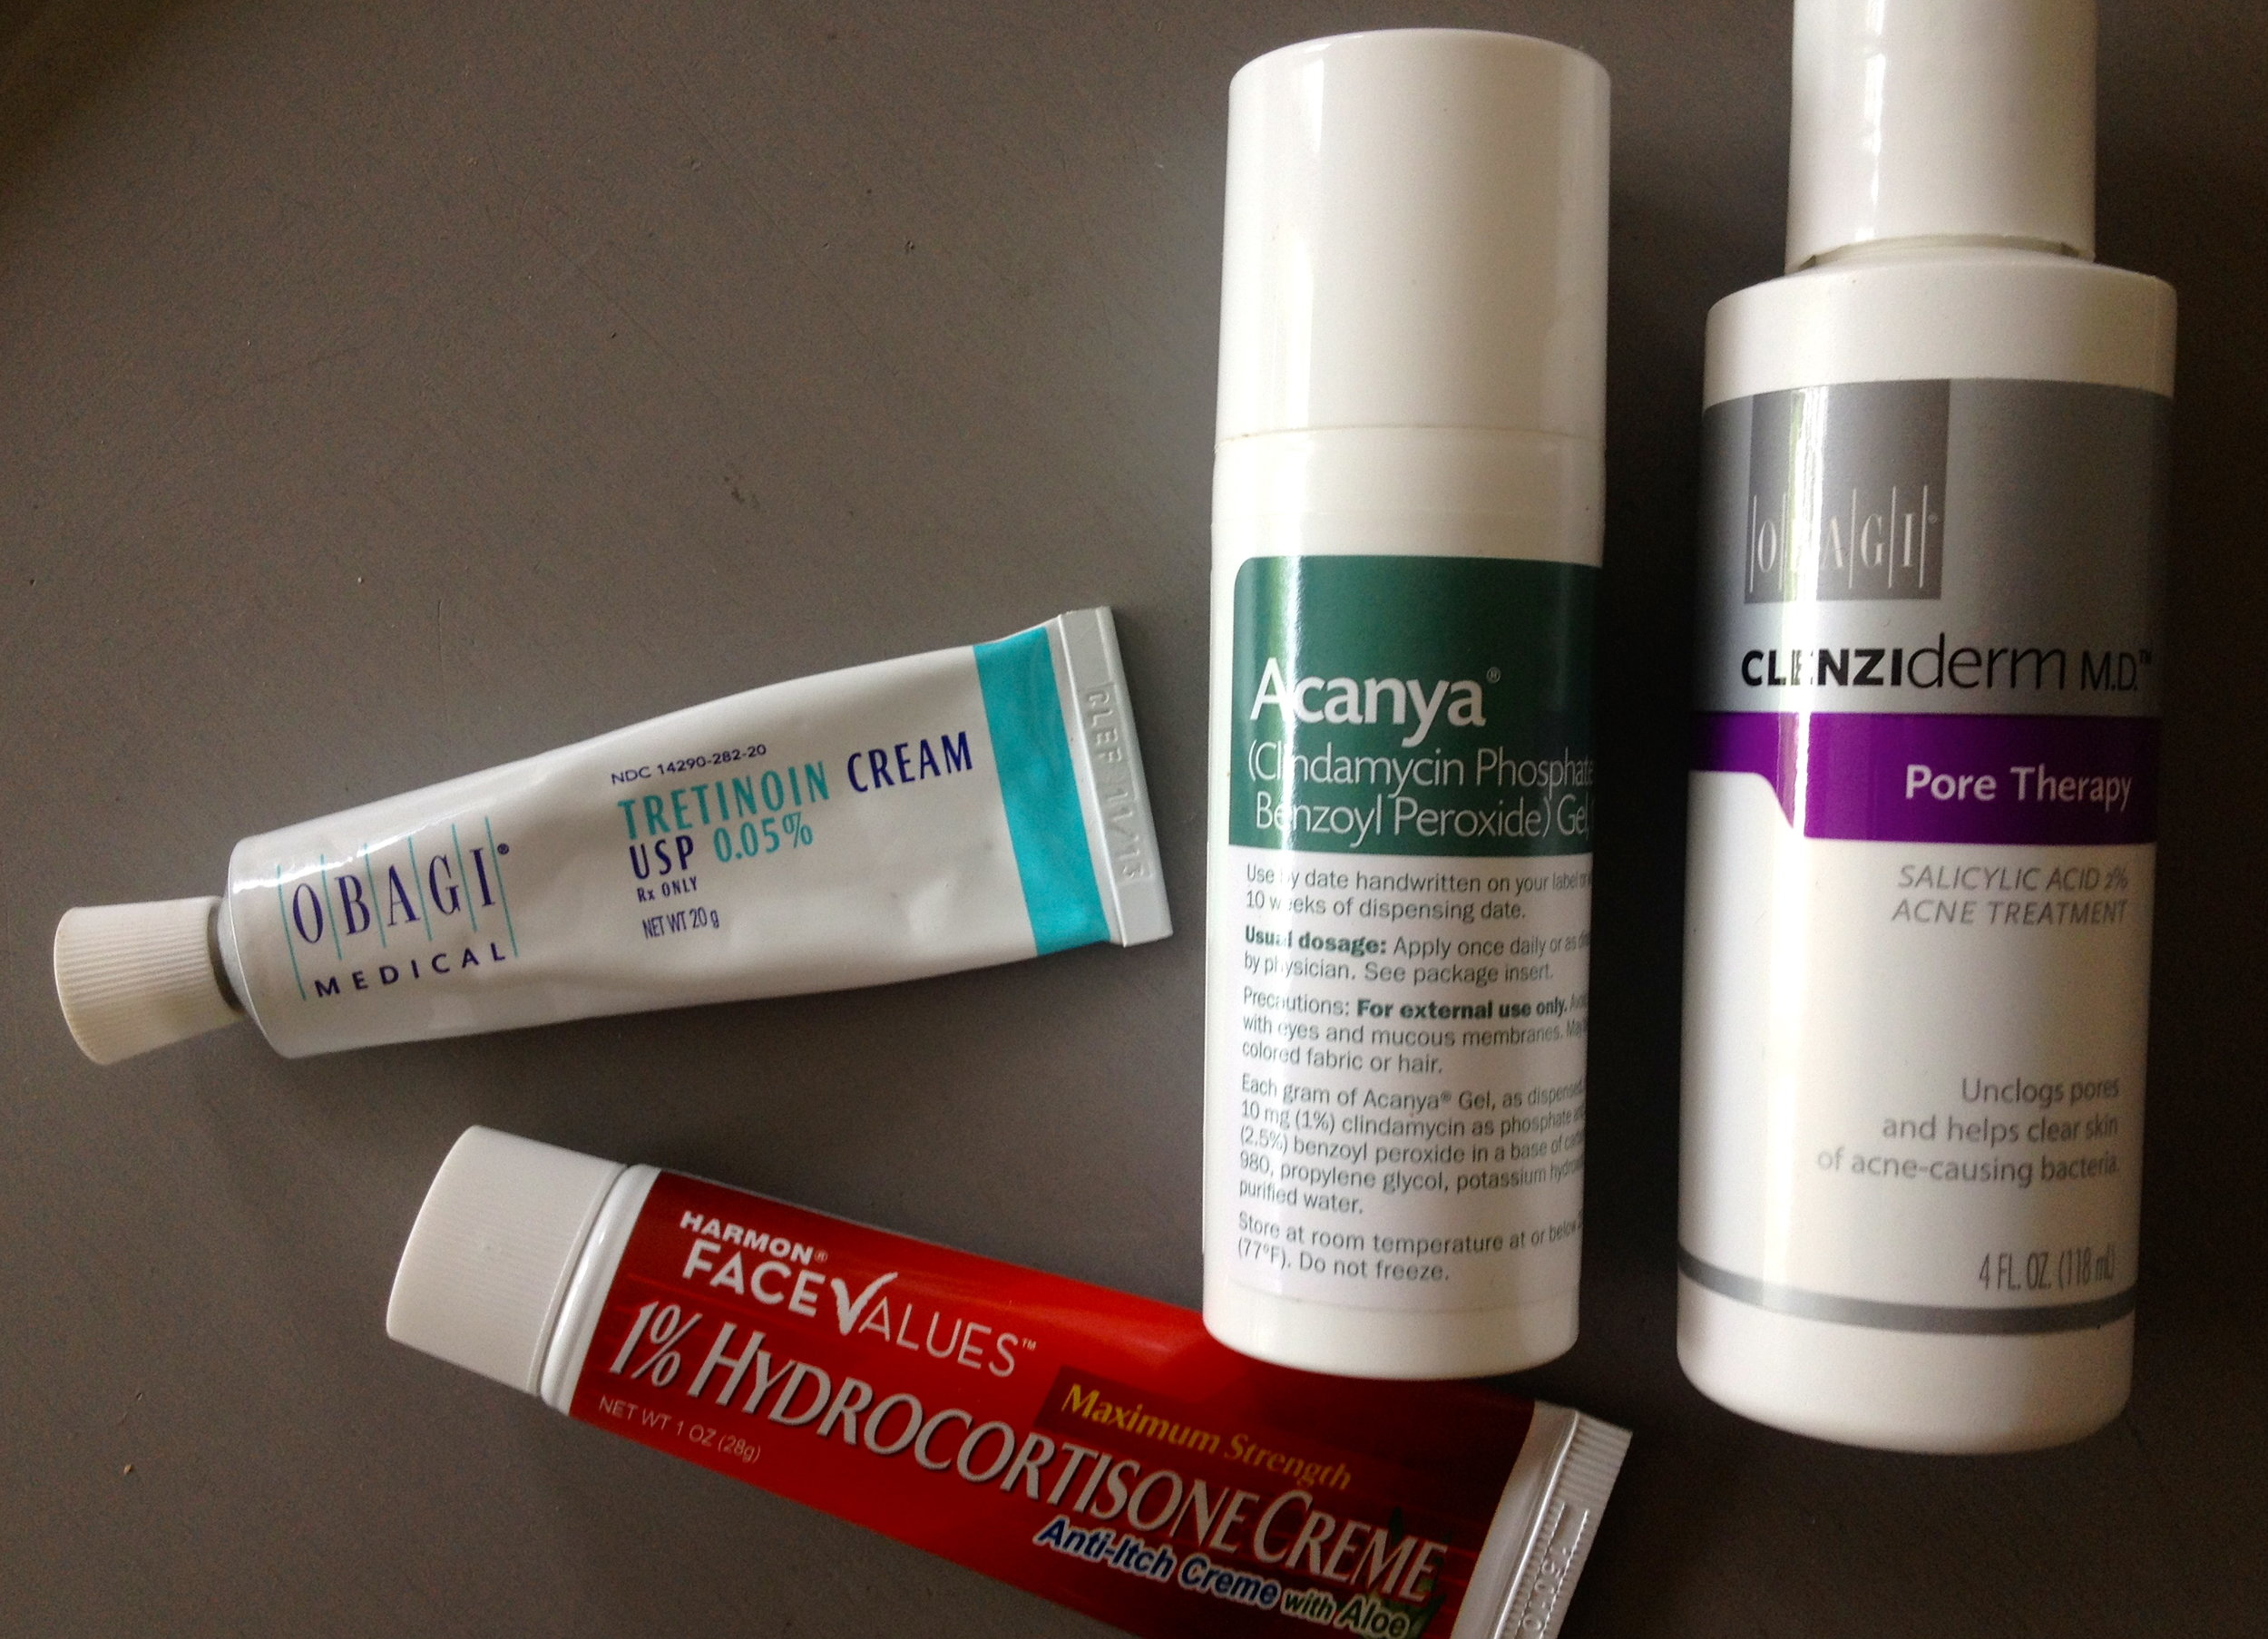 Acne Arsenal: Here are a handful of my fave blemish-fighters